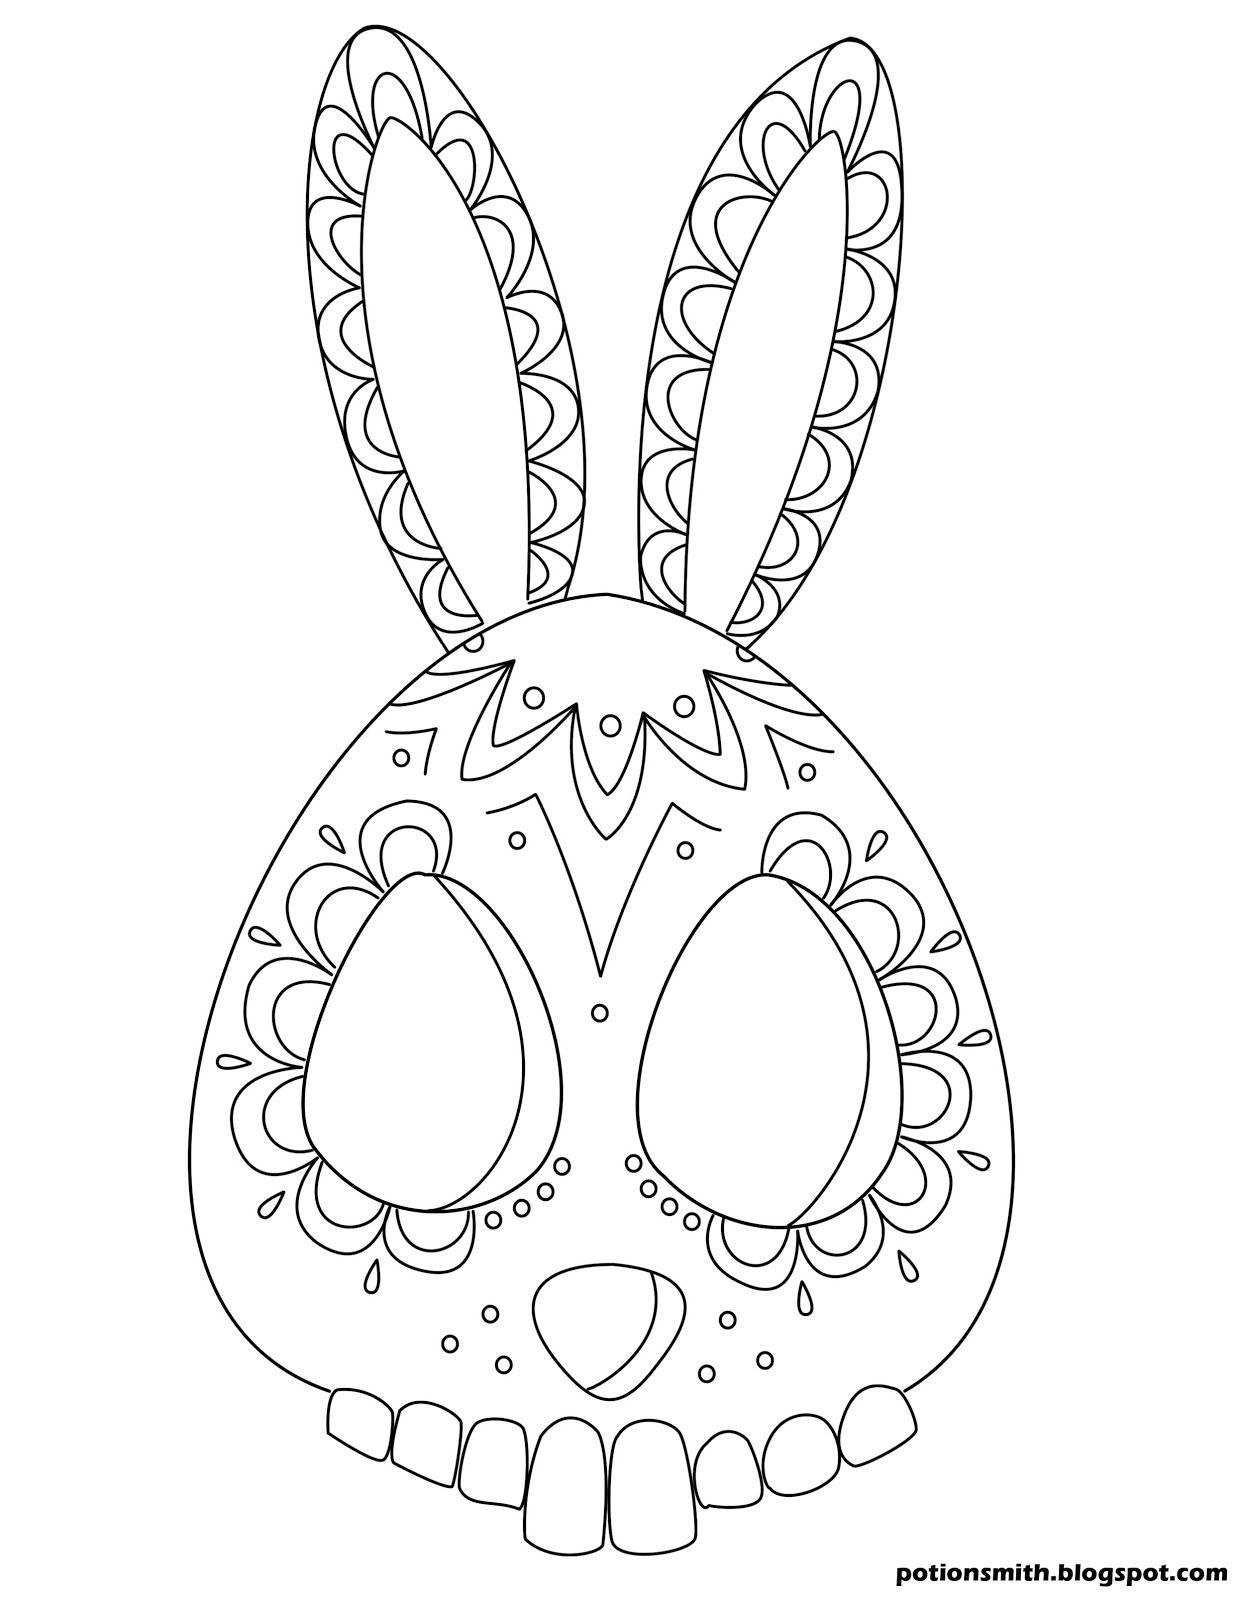 1242x1600 This Bunny Sugar Skull Is Kind Of Easter Eggy. Potionsmith Sugar